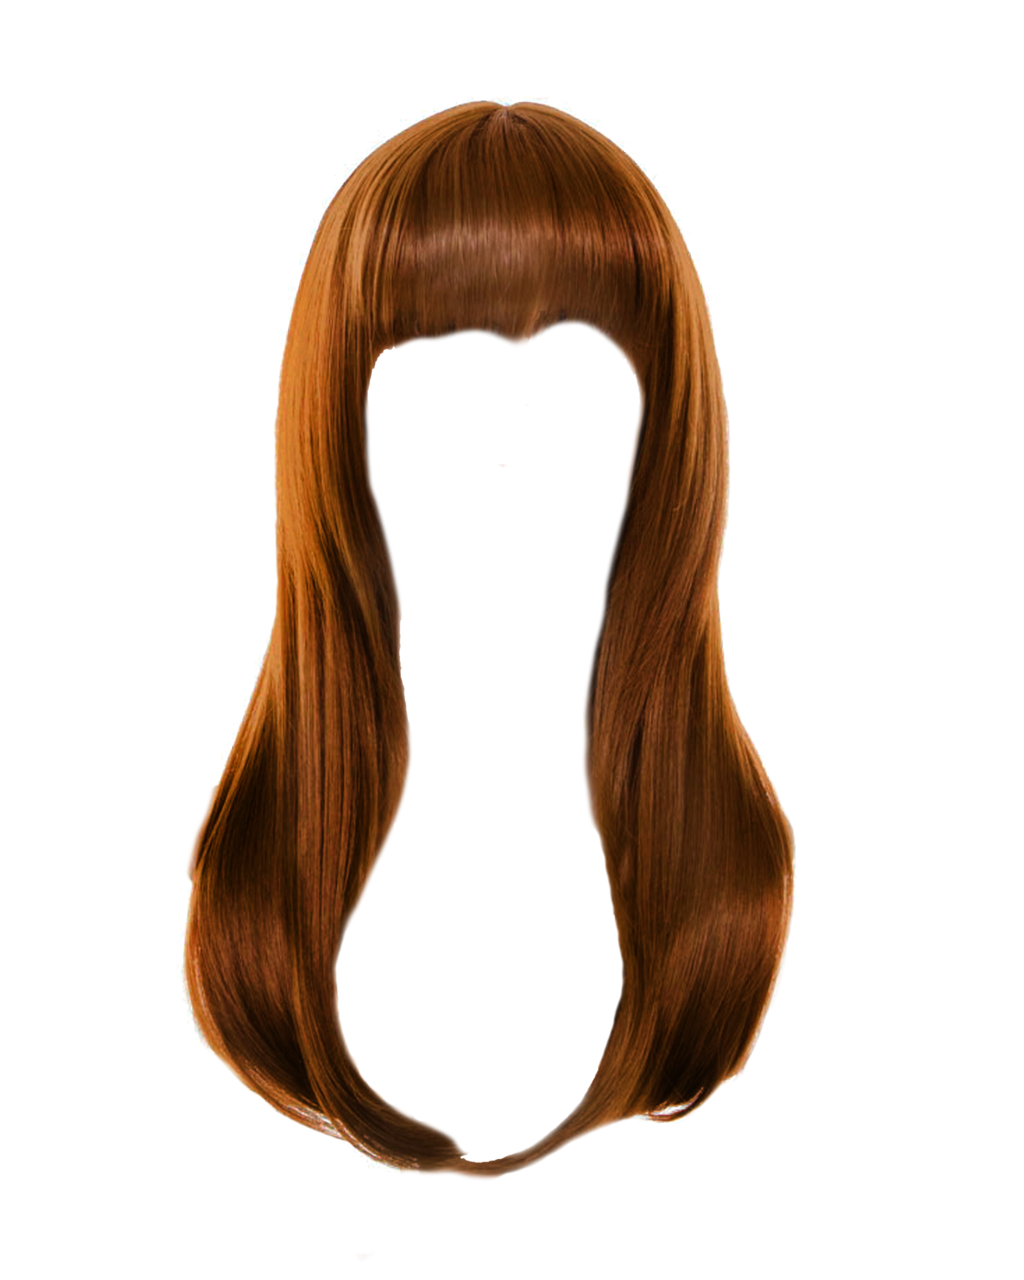 Hair styles clipart for photoshop clipart freeuse library Hairstyles photoshop brushes clipart images gallery for free ... clipart freeuse library